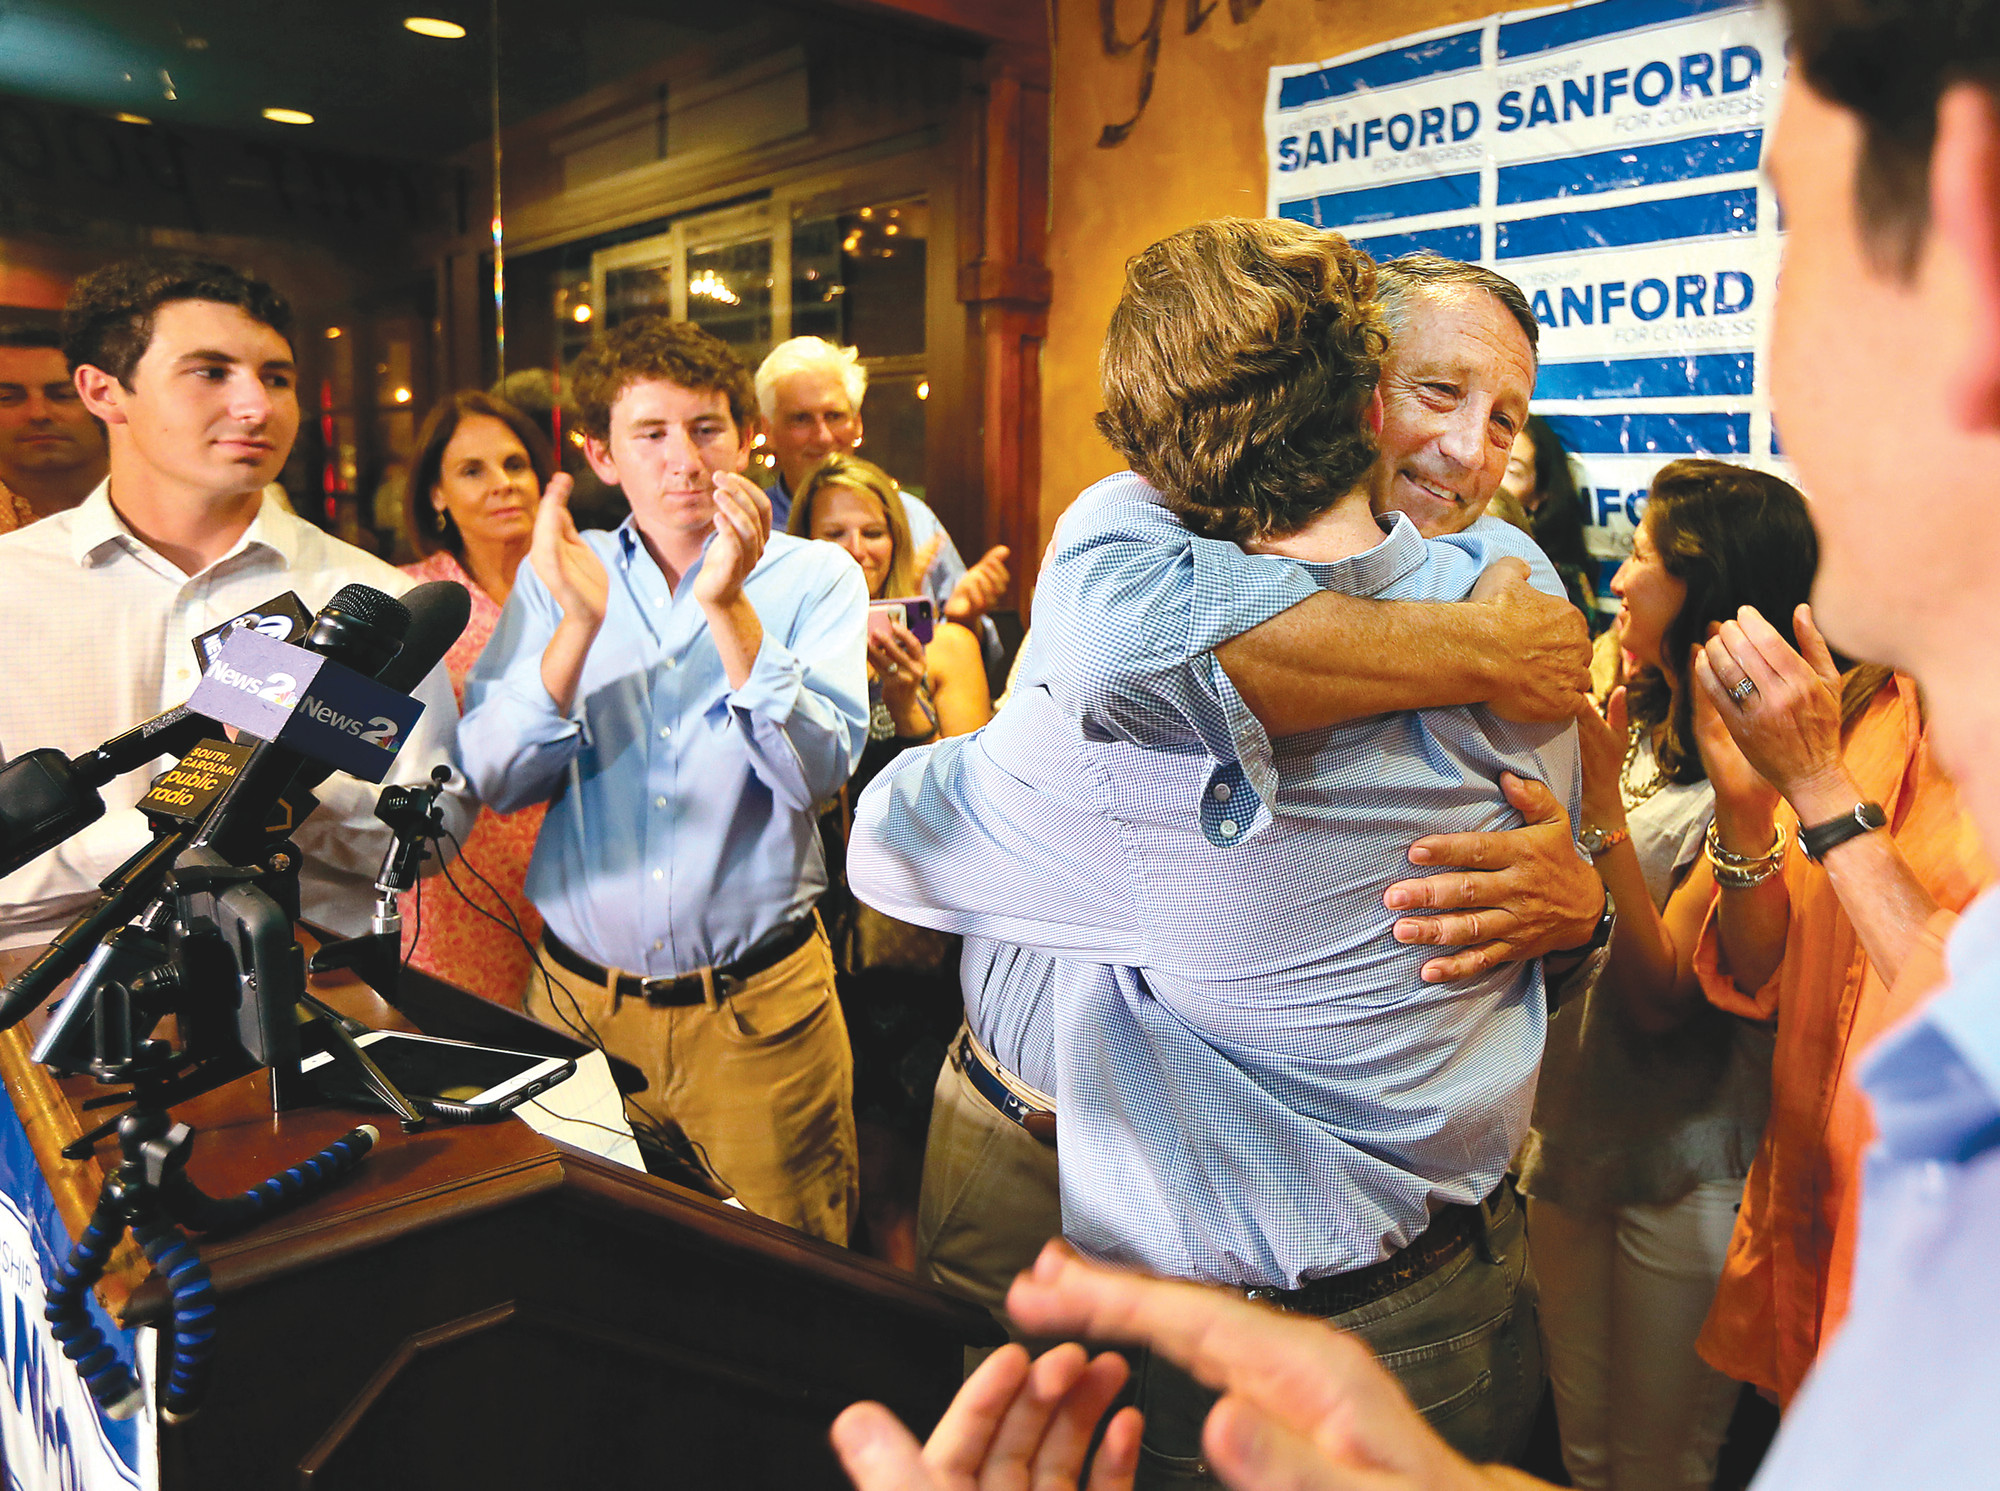 U.S. Rep. Mark Sanford hugs his sons after addressing his supporters at Liberty Tap Room in Mount Pleasant on Tuesday. Sanford lost his first election ever Tuesday, beaten for the Republican nomination for another term in the coastal 1st District around Charleston by state Rep. Katie Arrington.